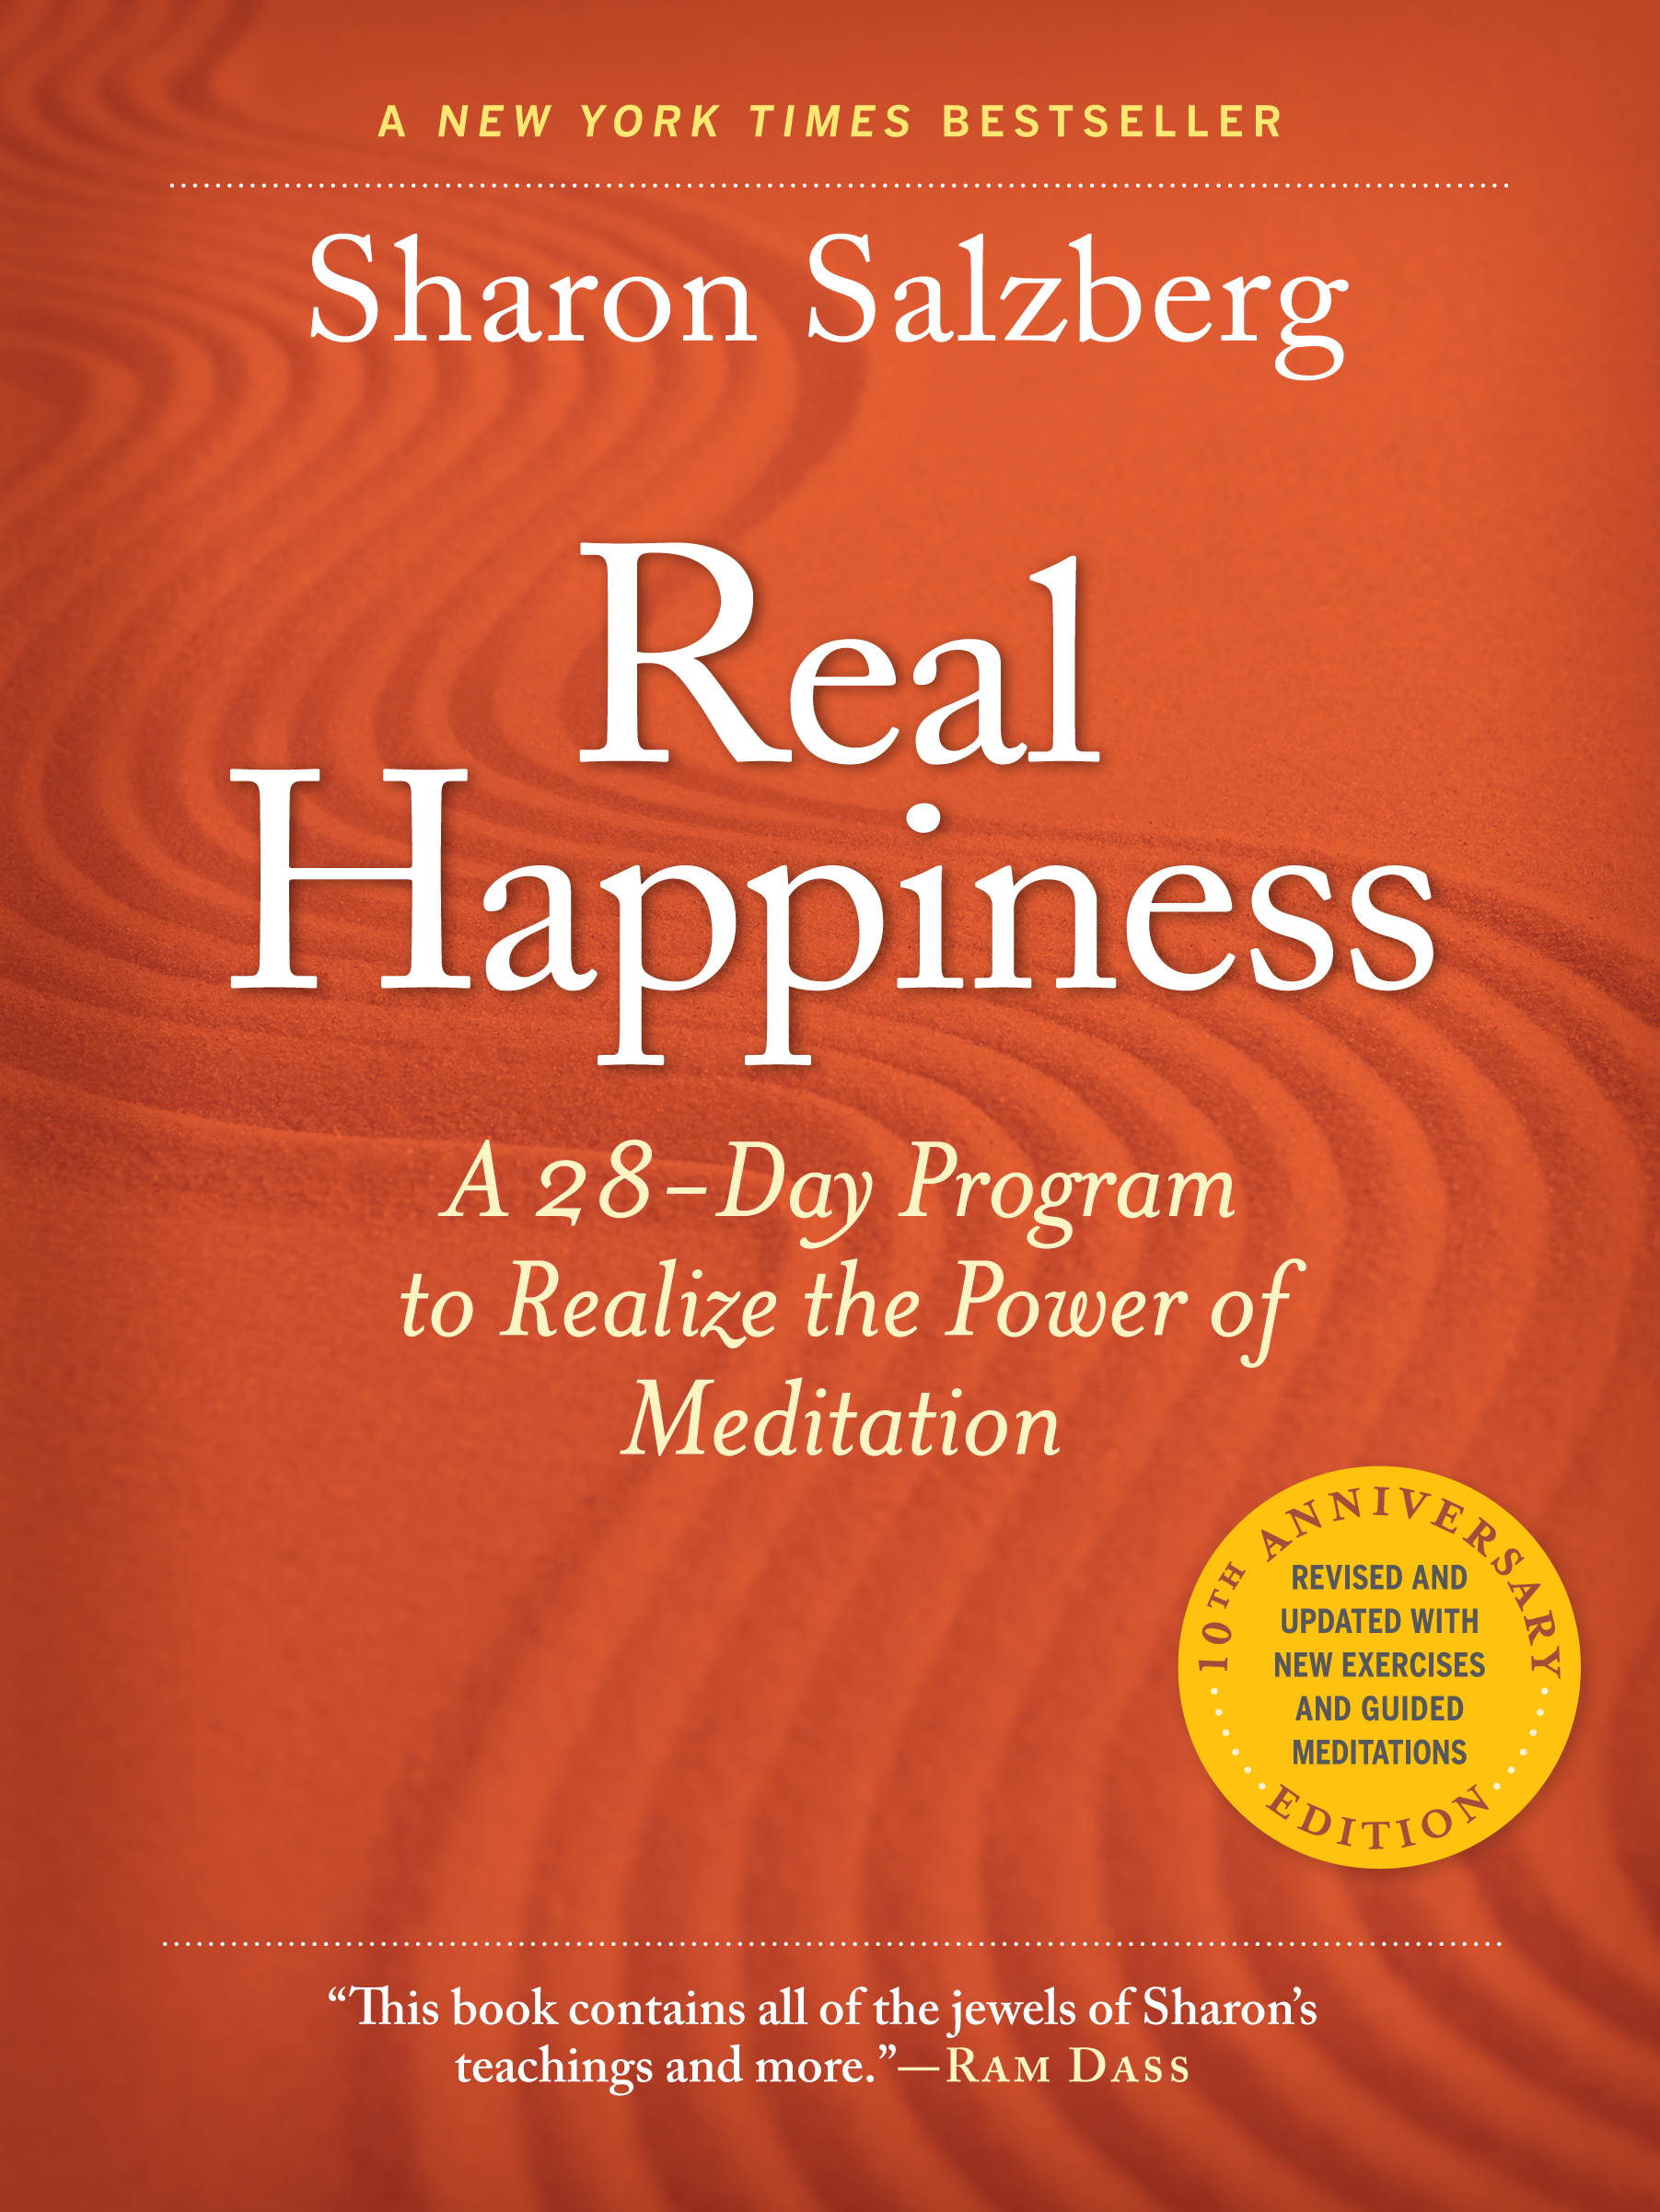 Real Happiness: A 28-Day Program to Realize the Power of Meditation